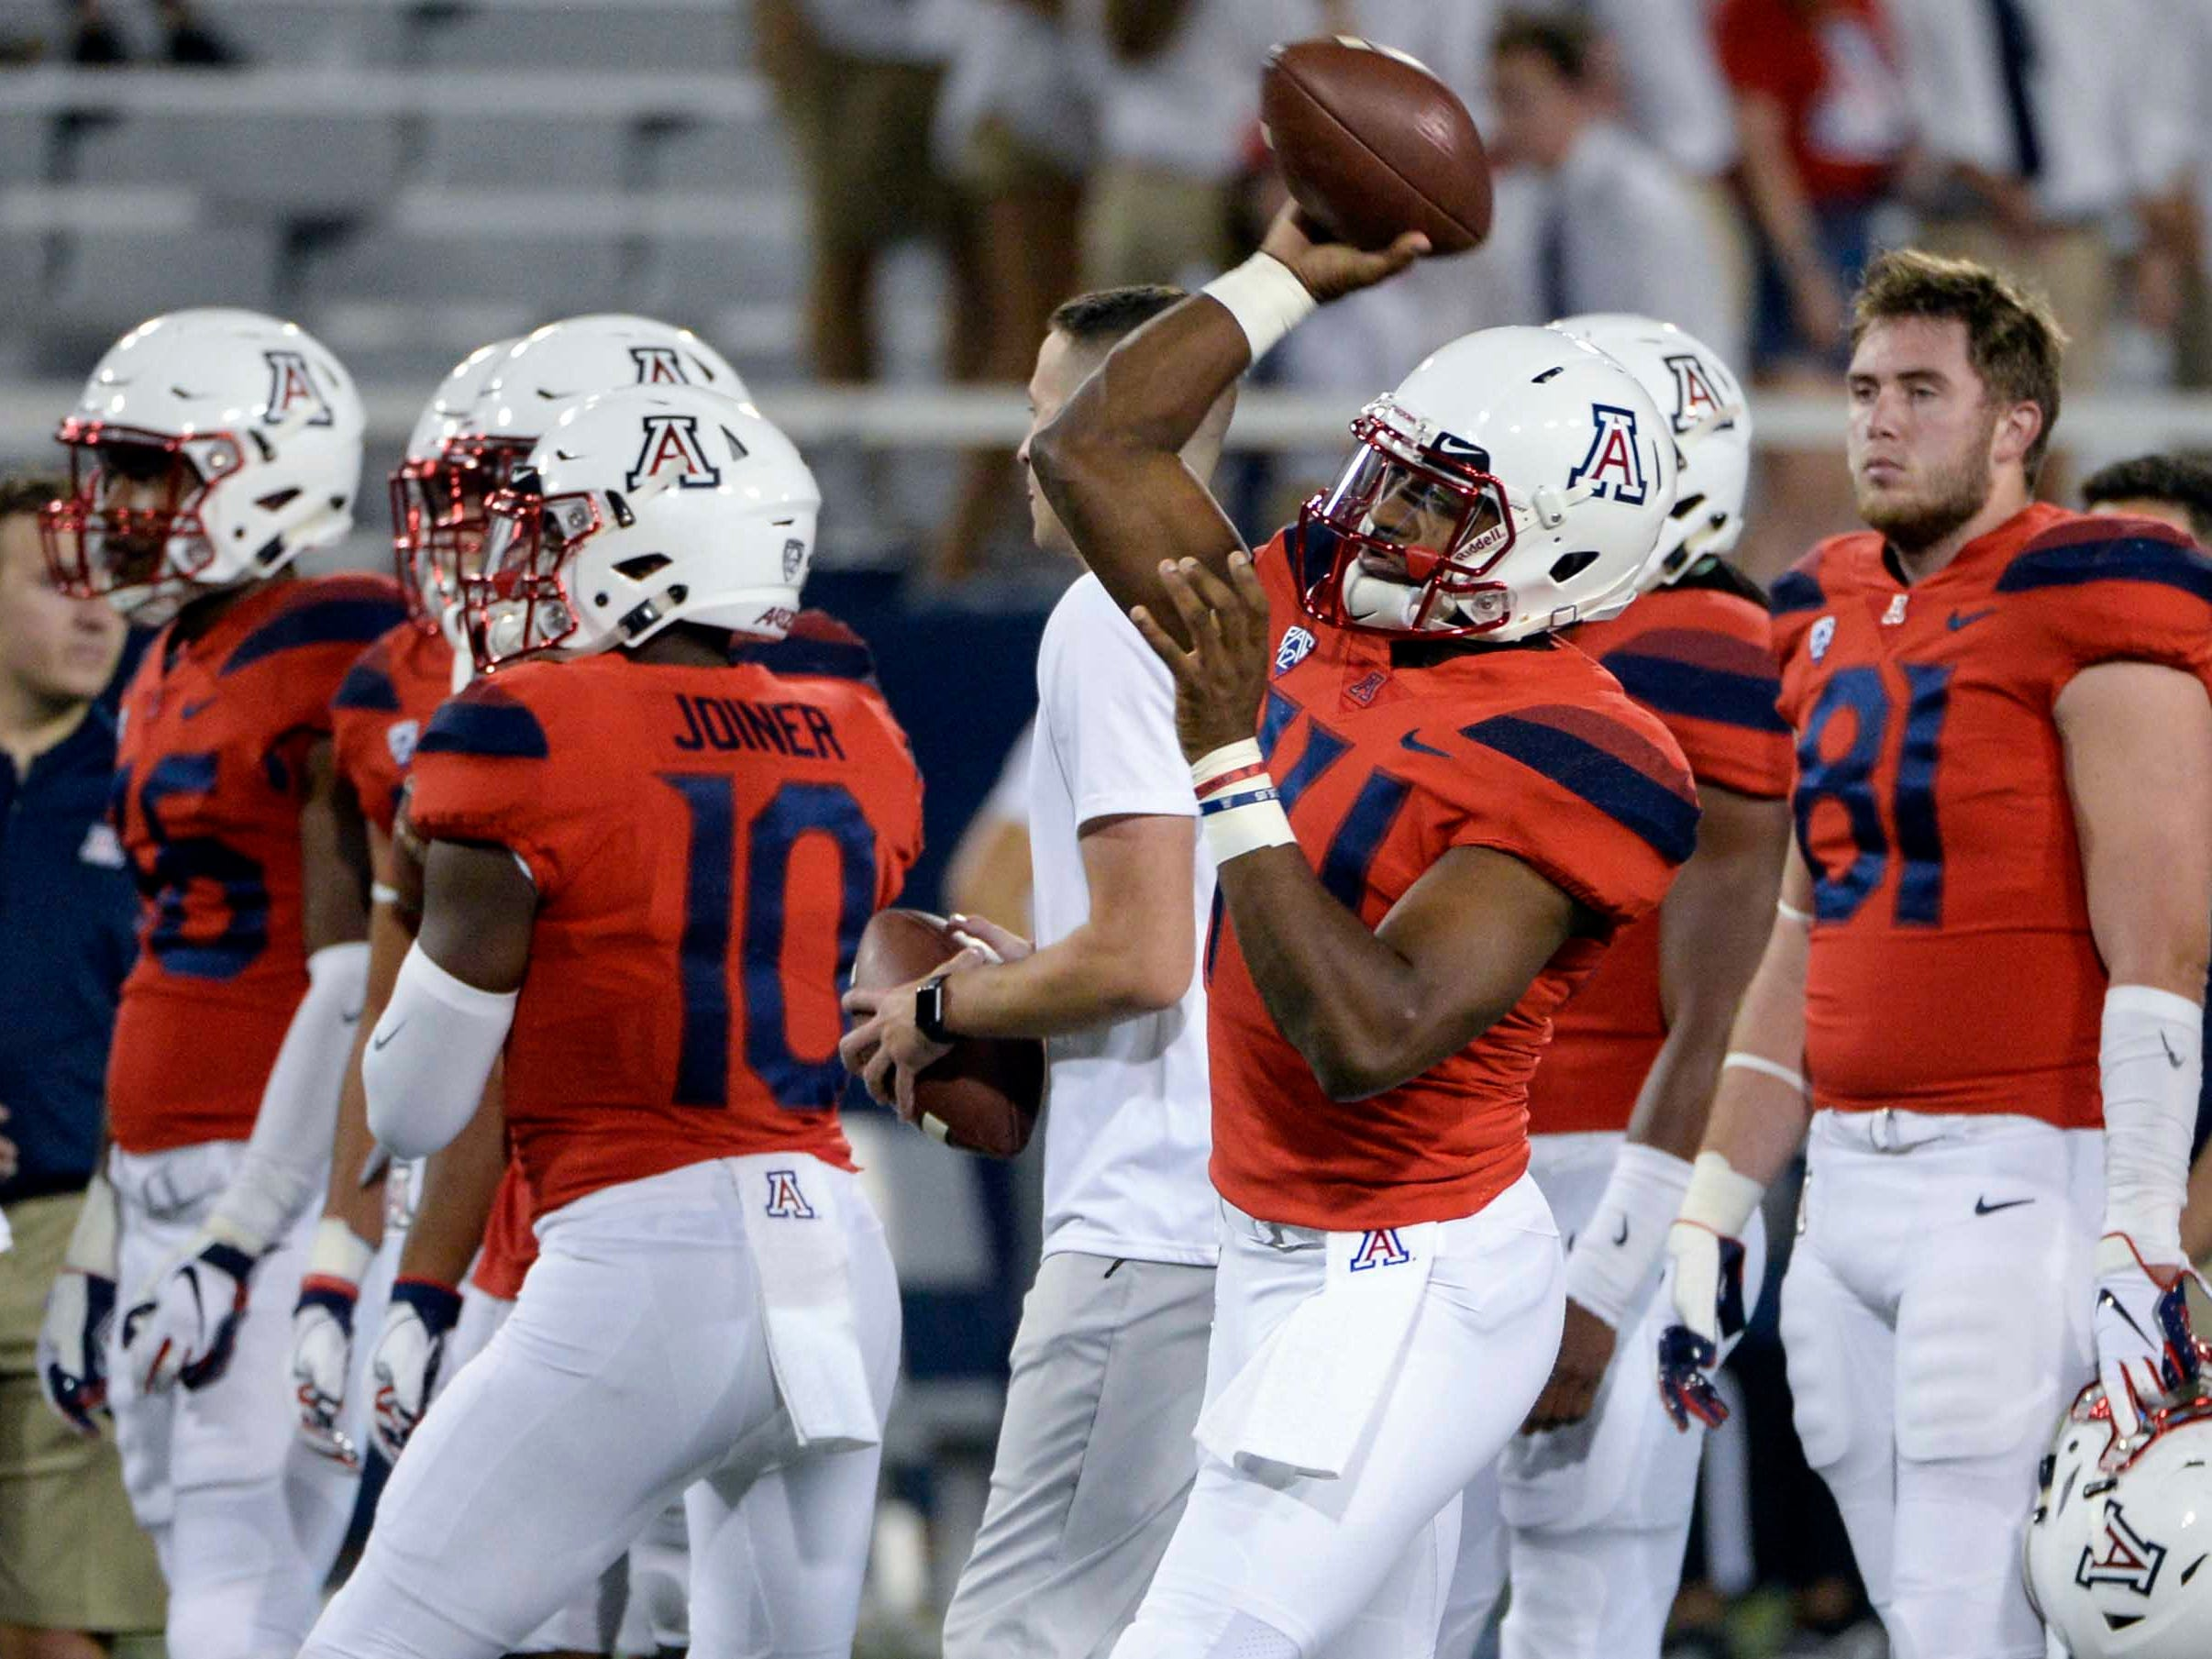 Oct 6, 2018; Tucson, AZ, USA; Arizona Wildcats quarterback Khalil Tate (14) warms up before playing the California Golden Bears at Arizona Stadium. Mandatory Credit: Casey Sapio-USA TODAY Sports